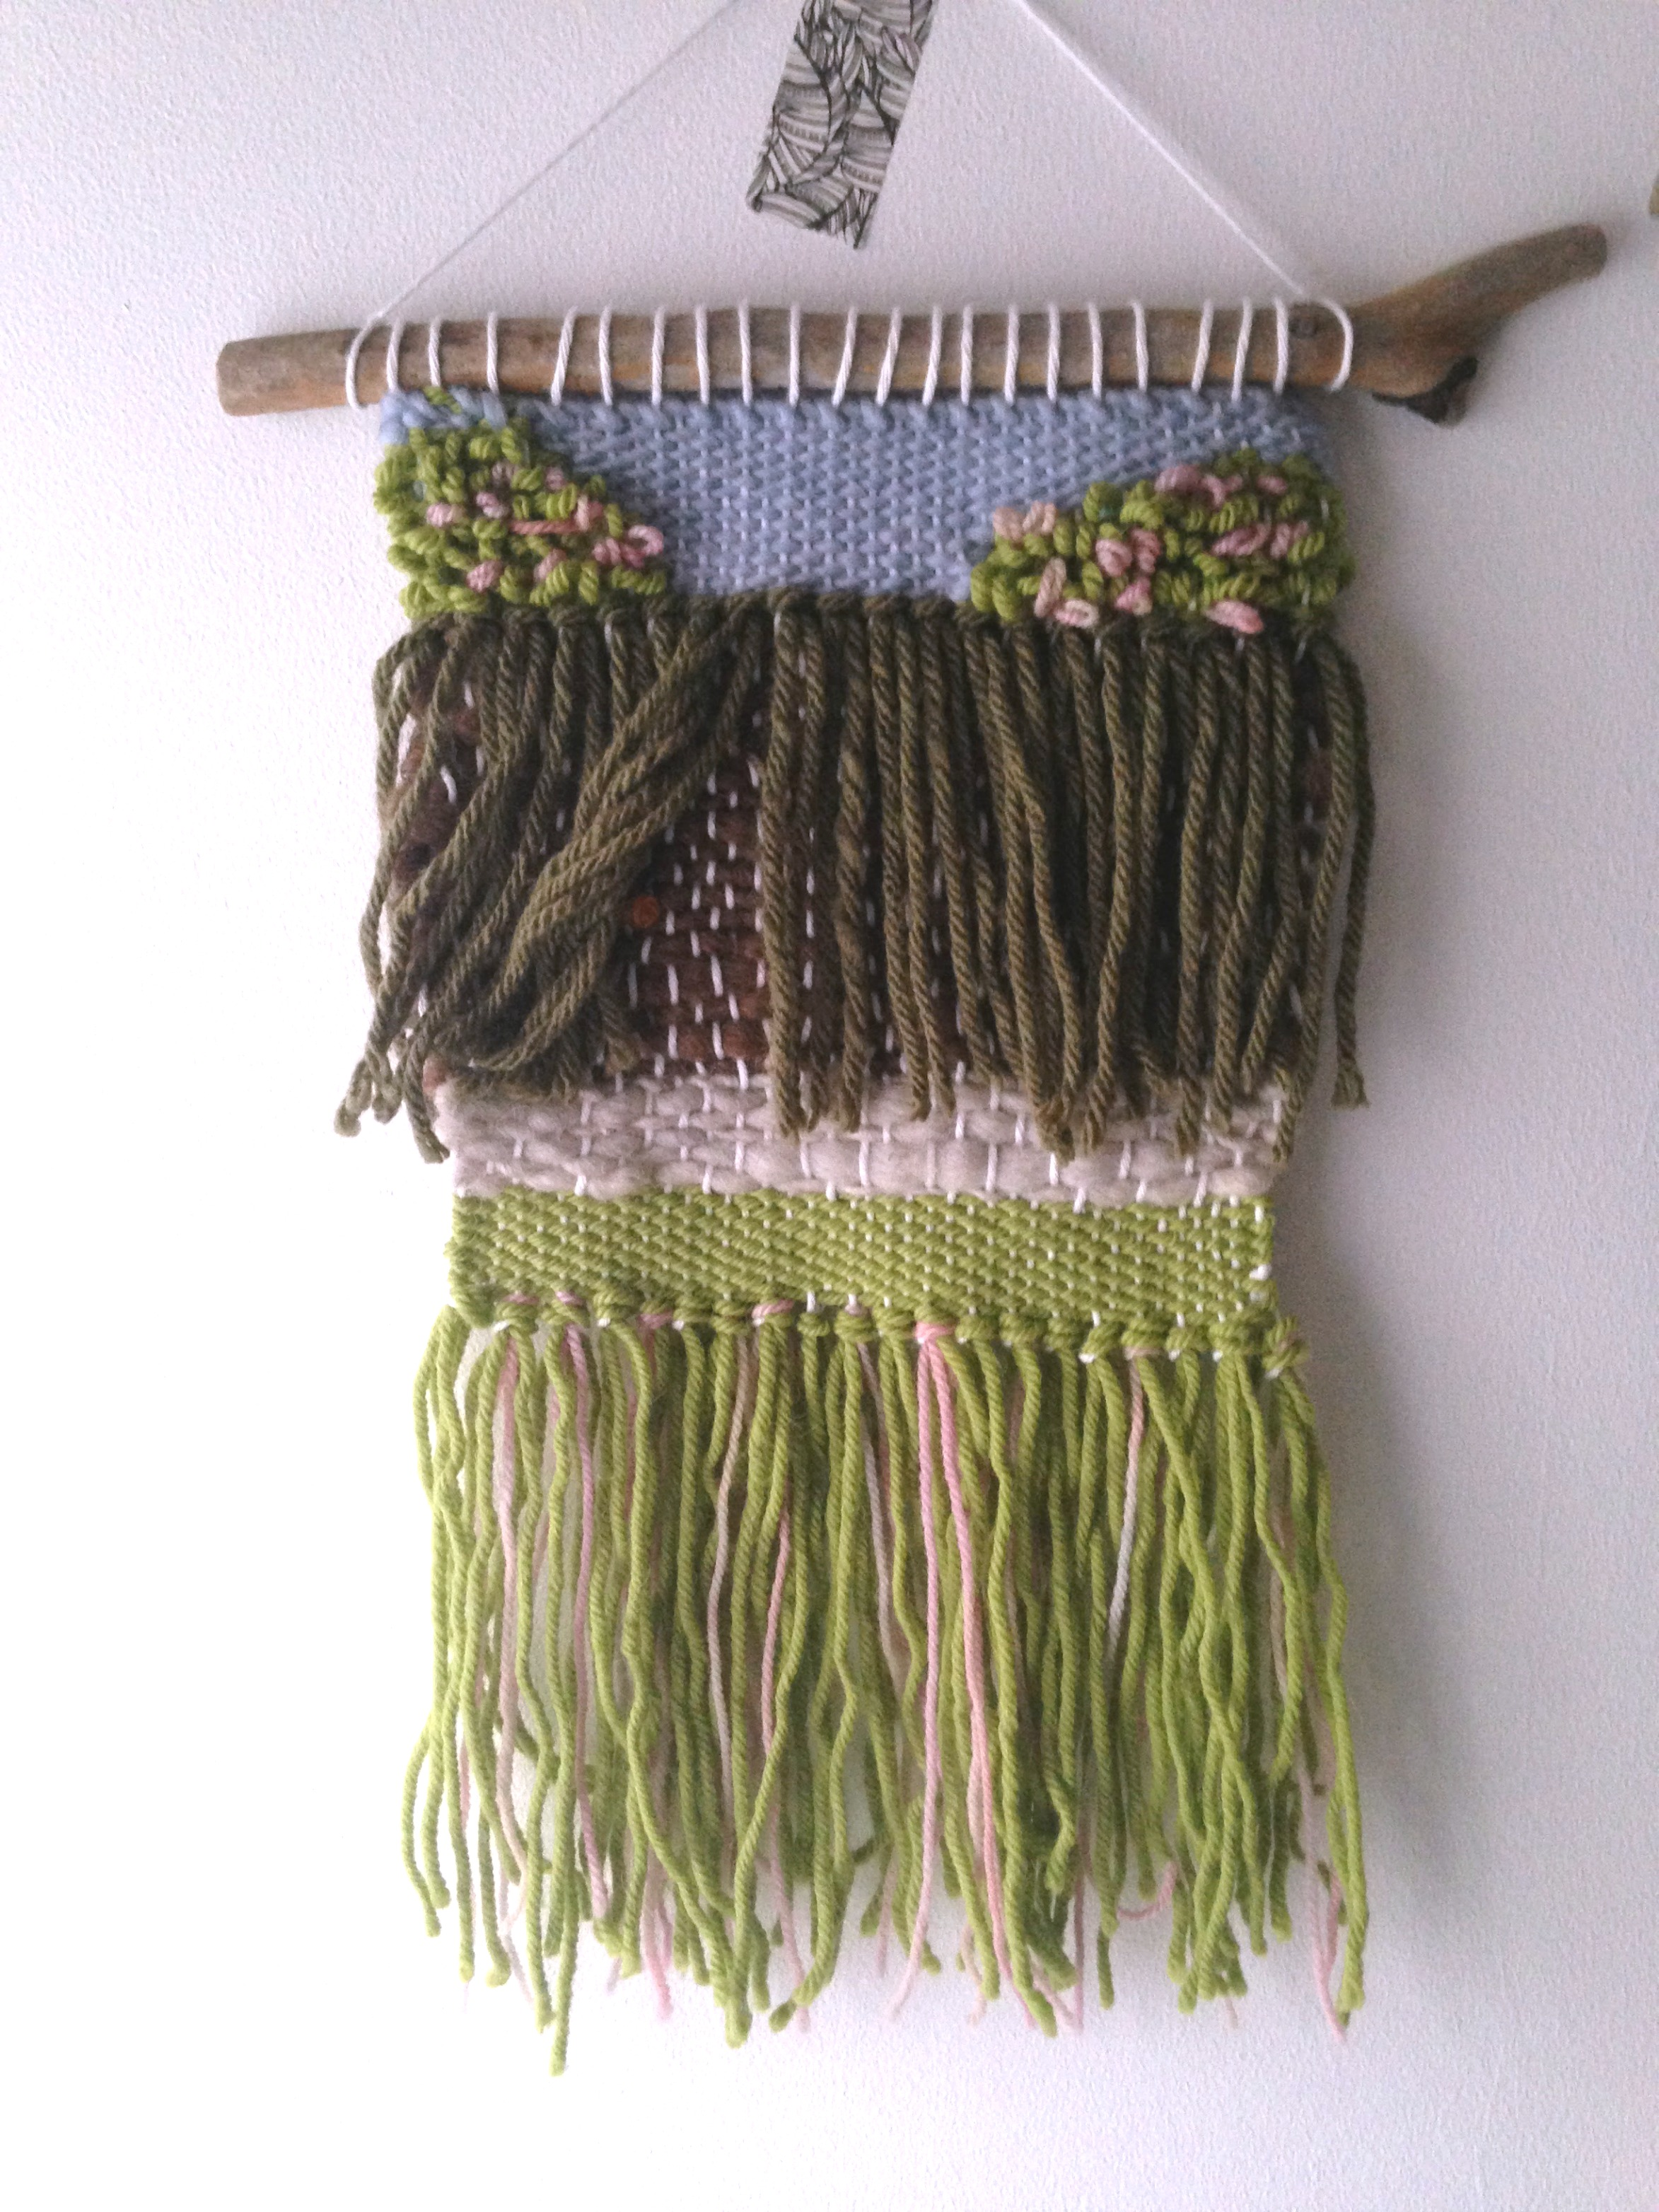 The Secret Garden weaving | Book inspired wall hanging, perfect for a literary themed room or nursery.